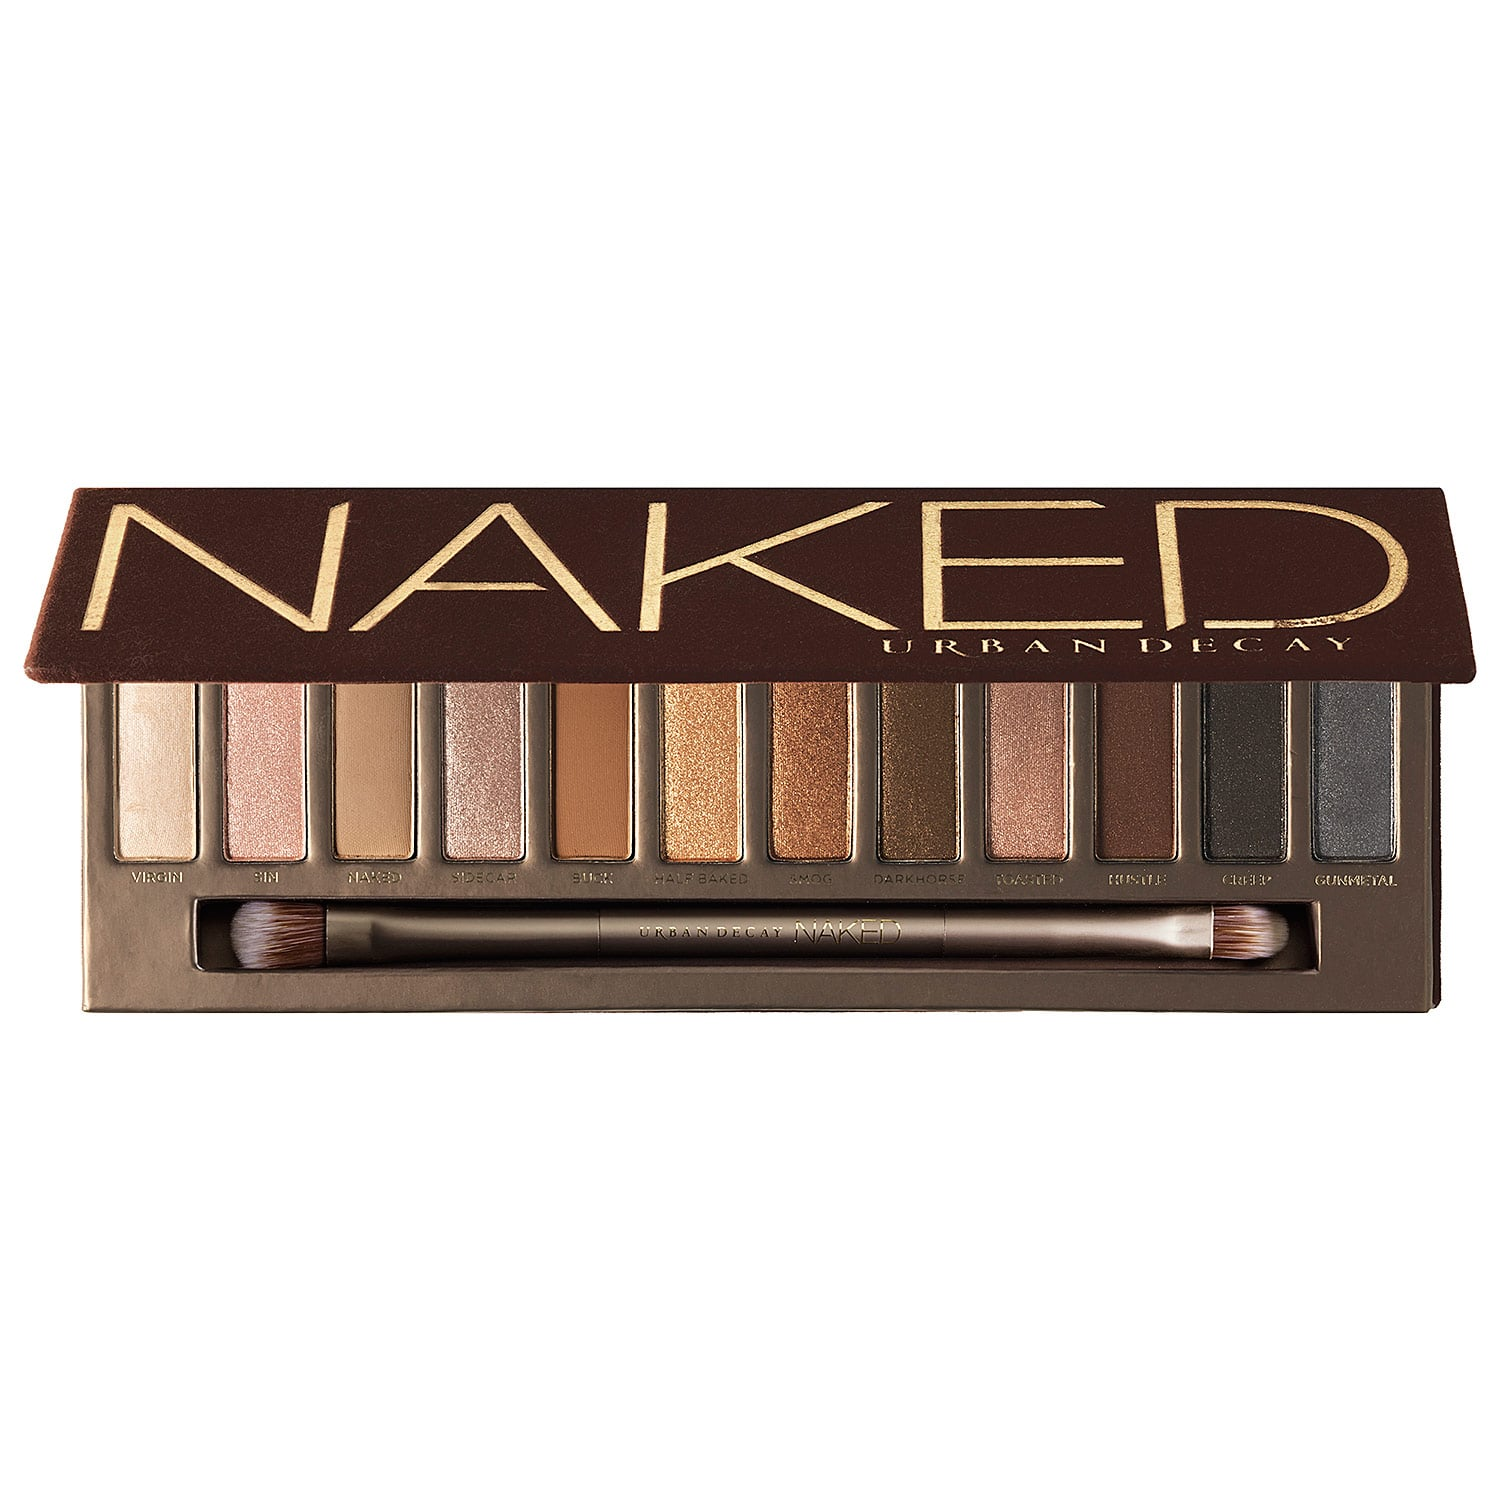 Urban decay naked palette 1 galleries 99